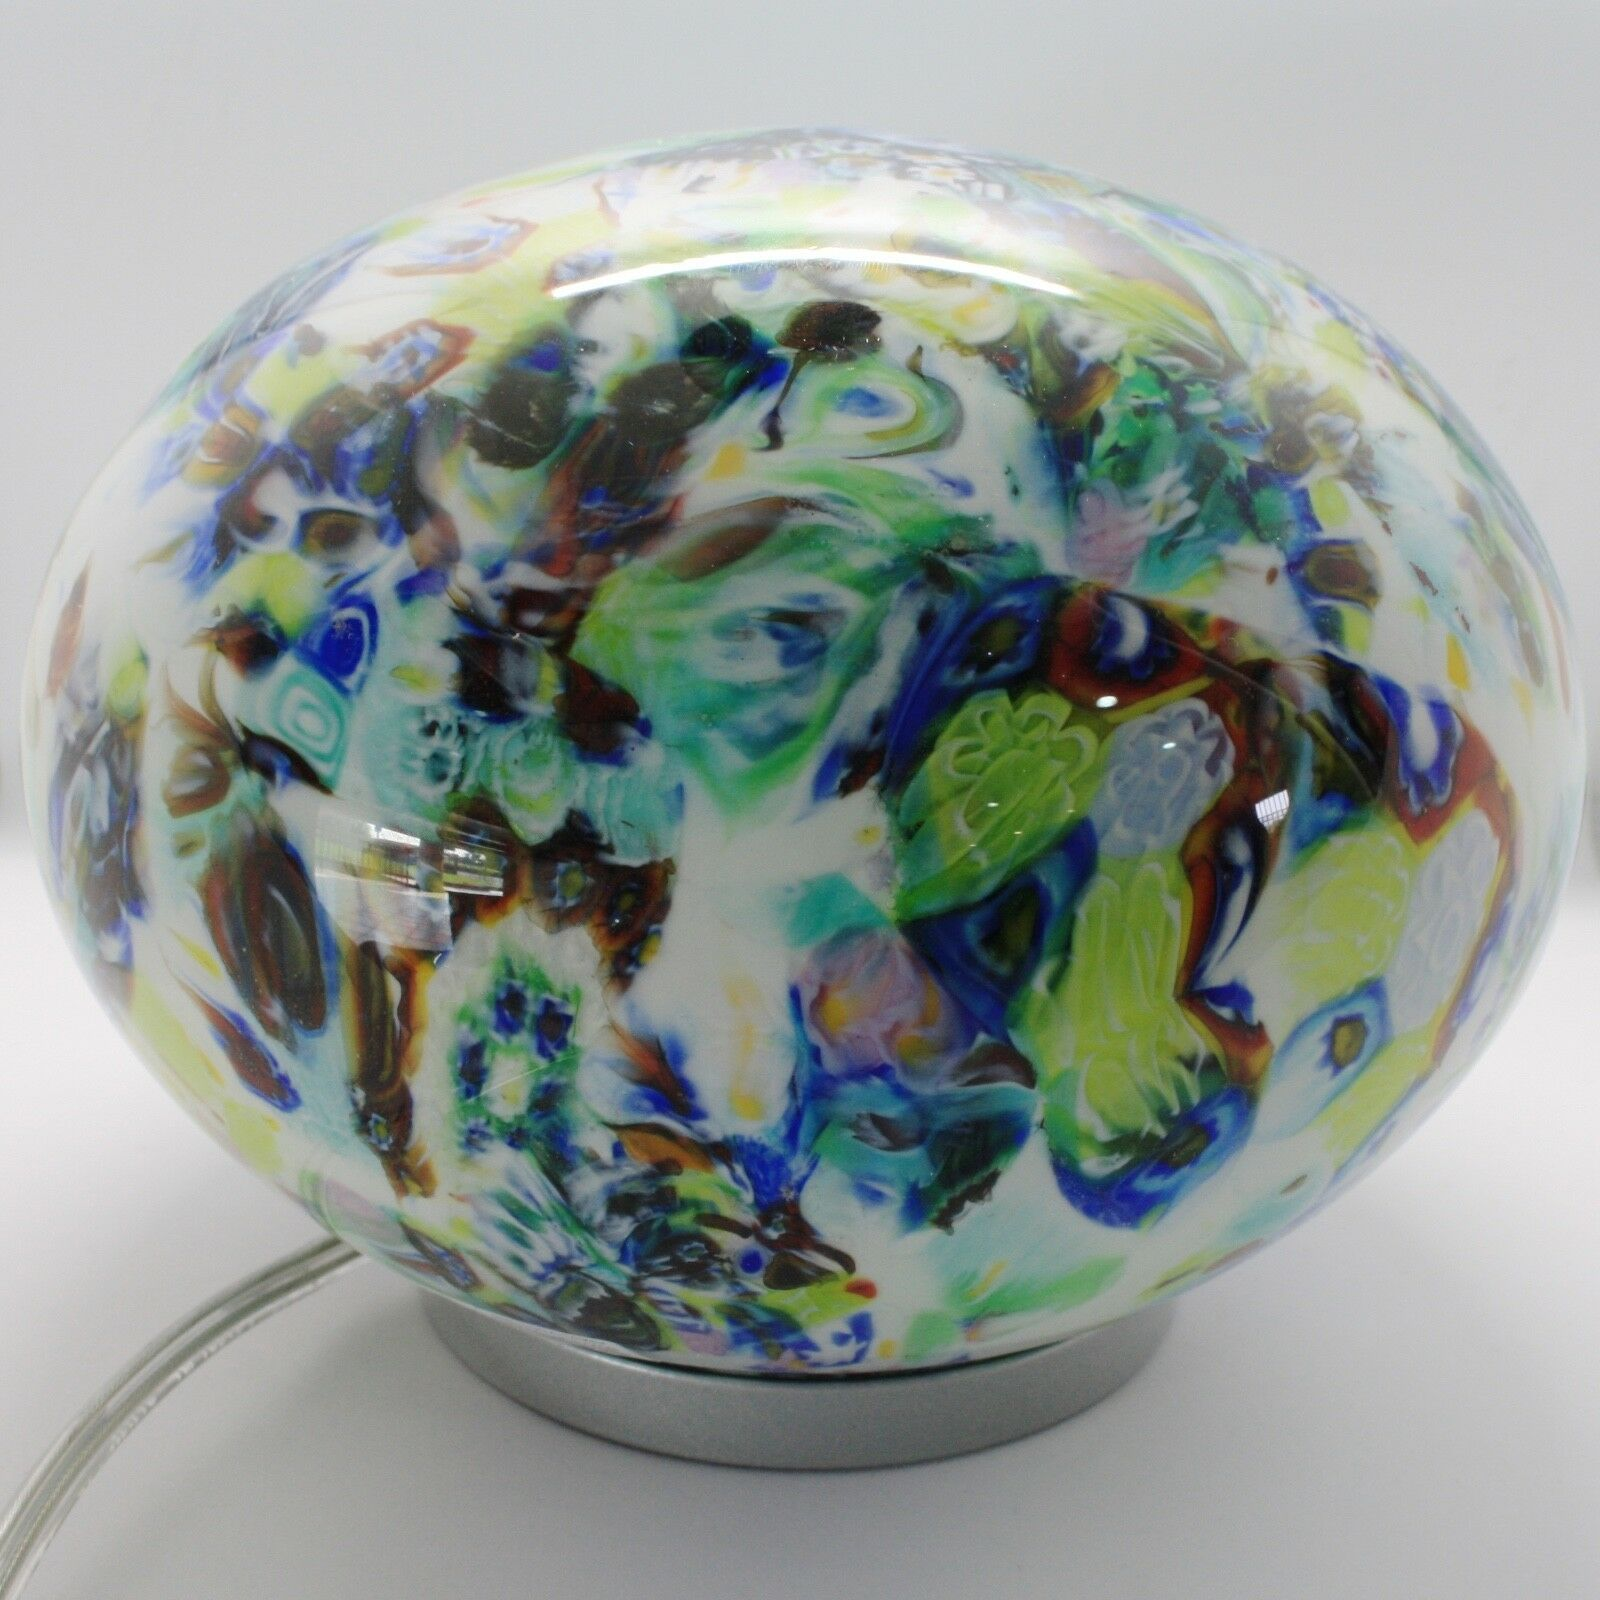 Lamp Antique Murrina Venice, Oval, Glass Murano, 16 cm, Blue, Black,Green